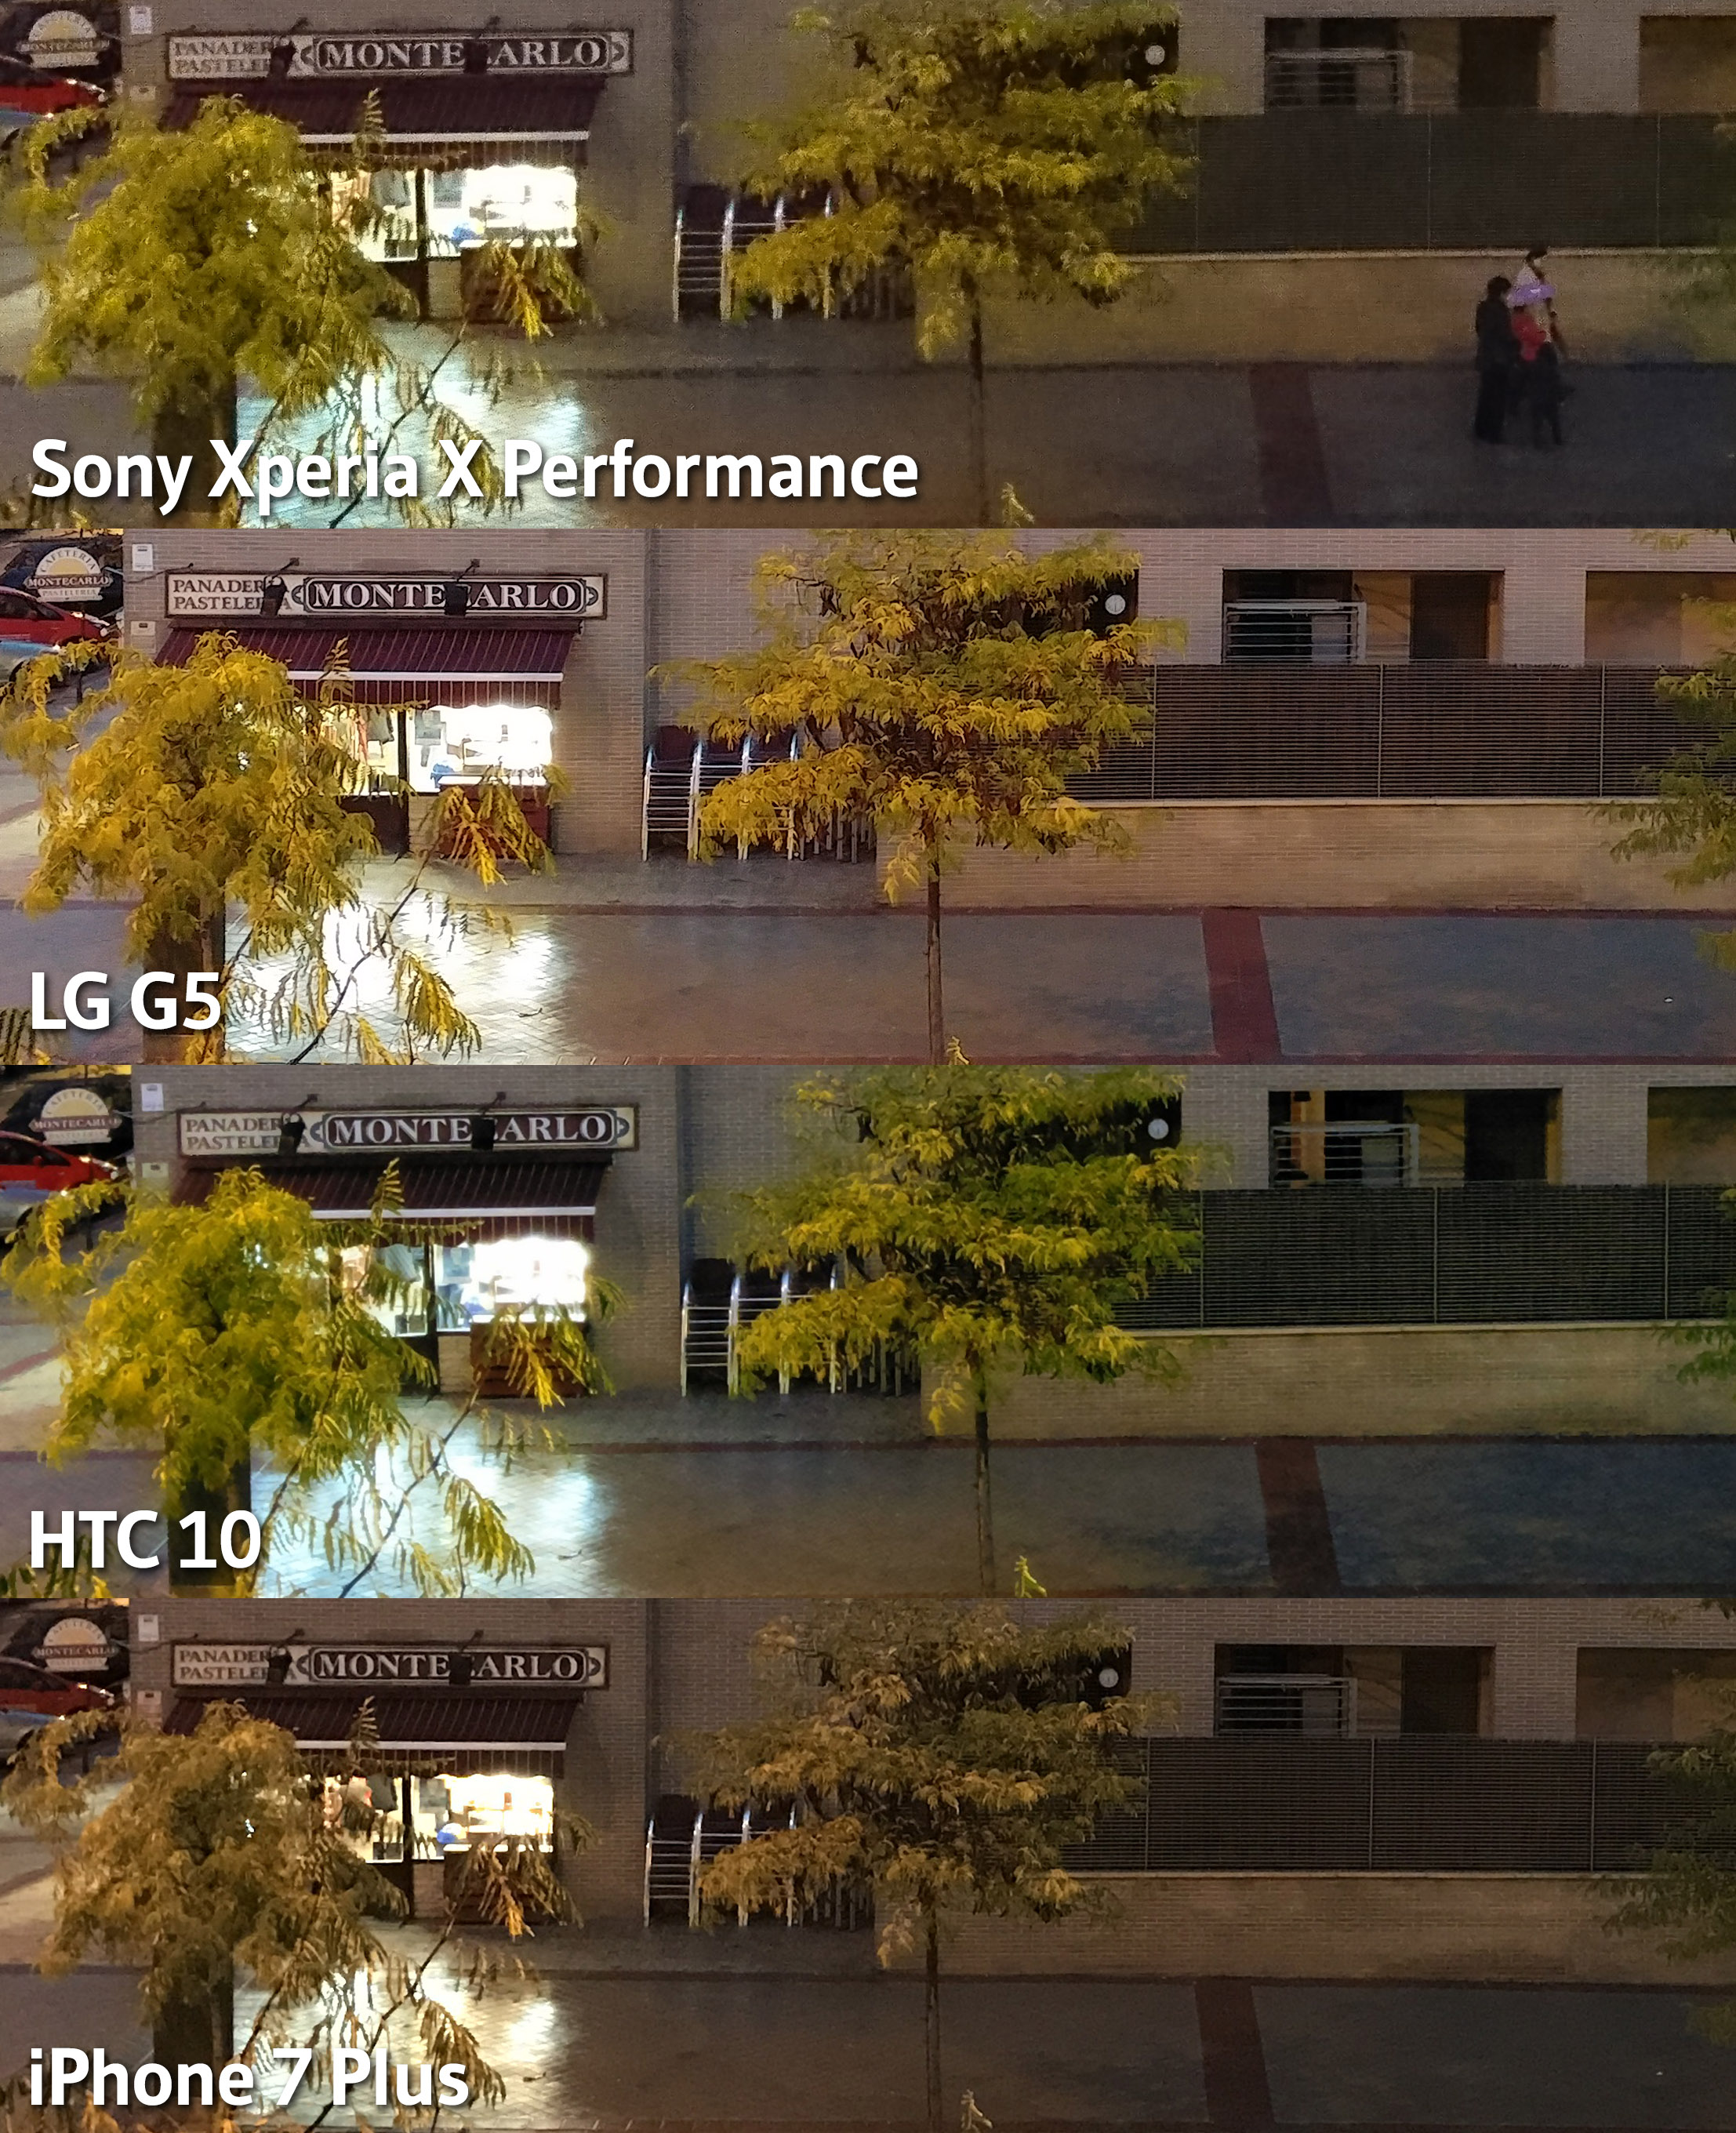 comparativa-noche-sony-xperia-x-performance-lg-g5-htc-10-iphone-7-plus-teknofilo